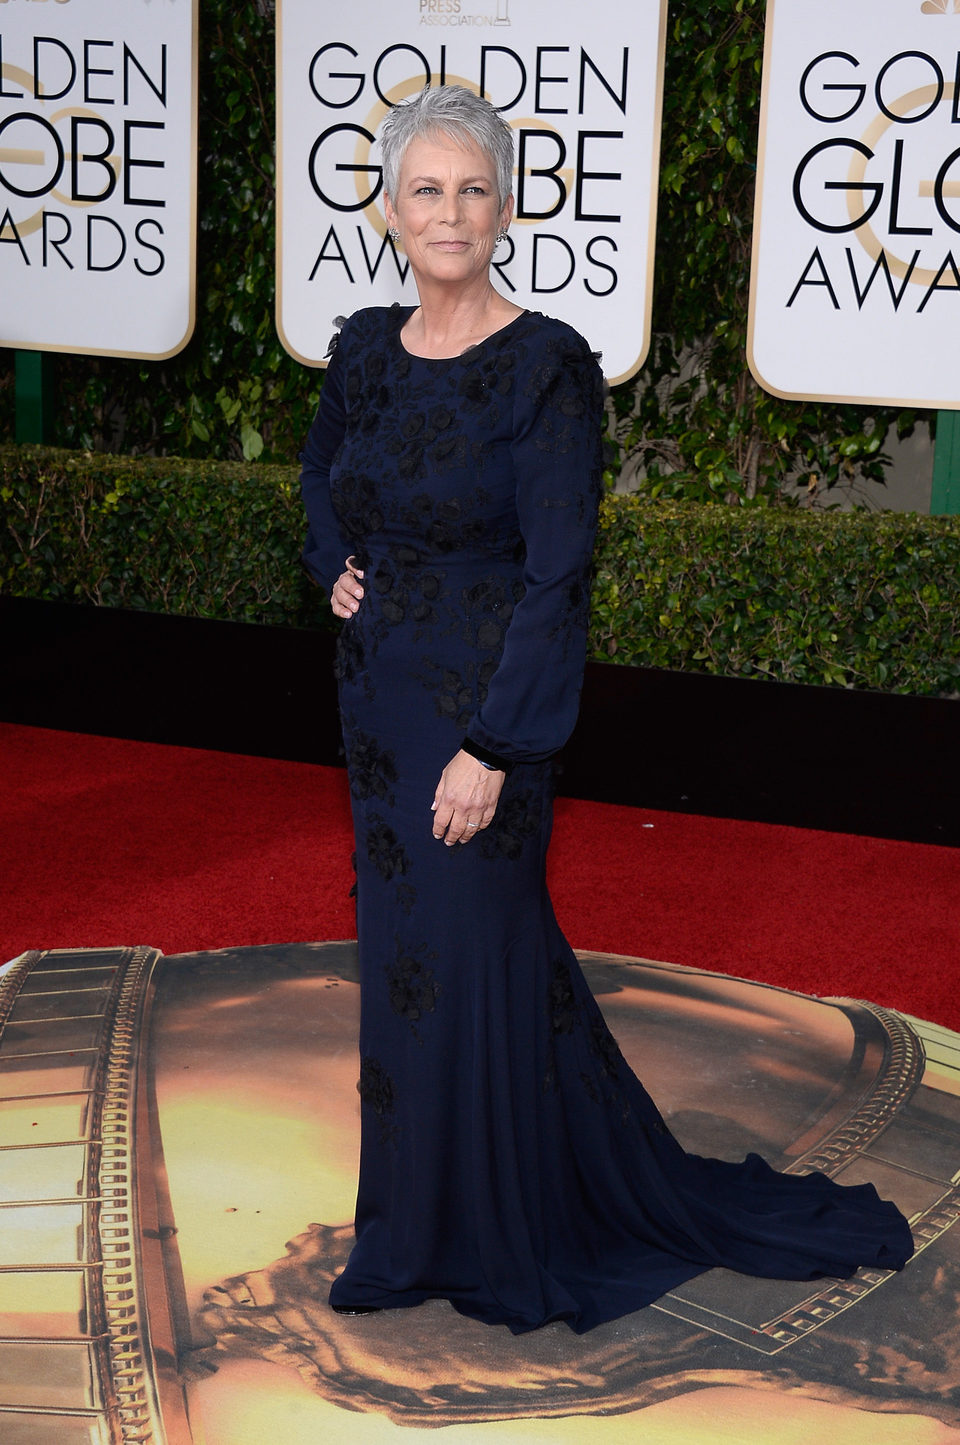 Jamie Lee Curtis in the 2016 Golden Globes red carpet